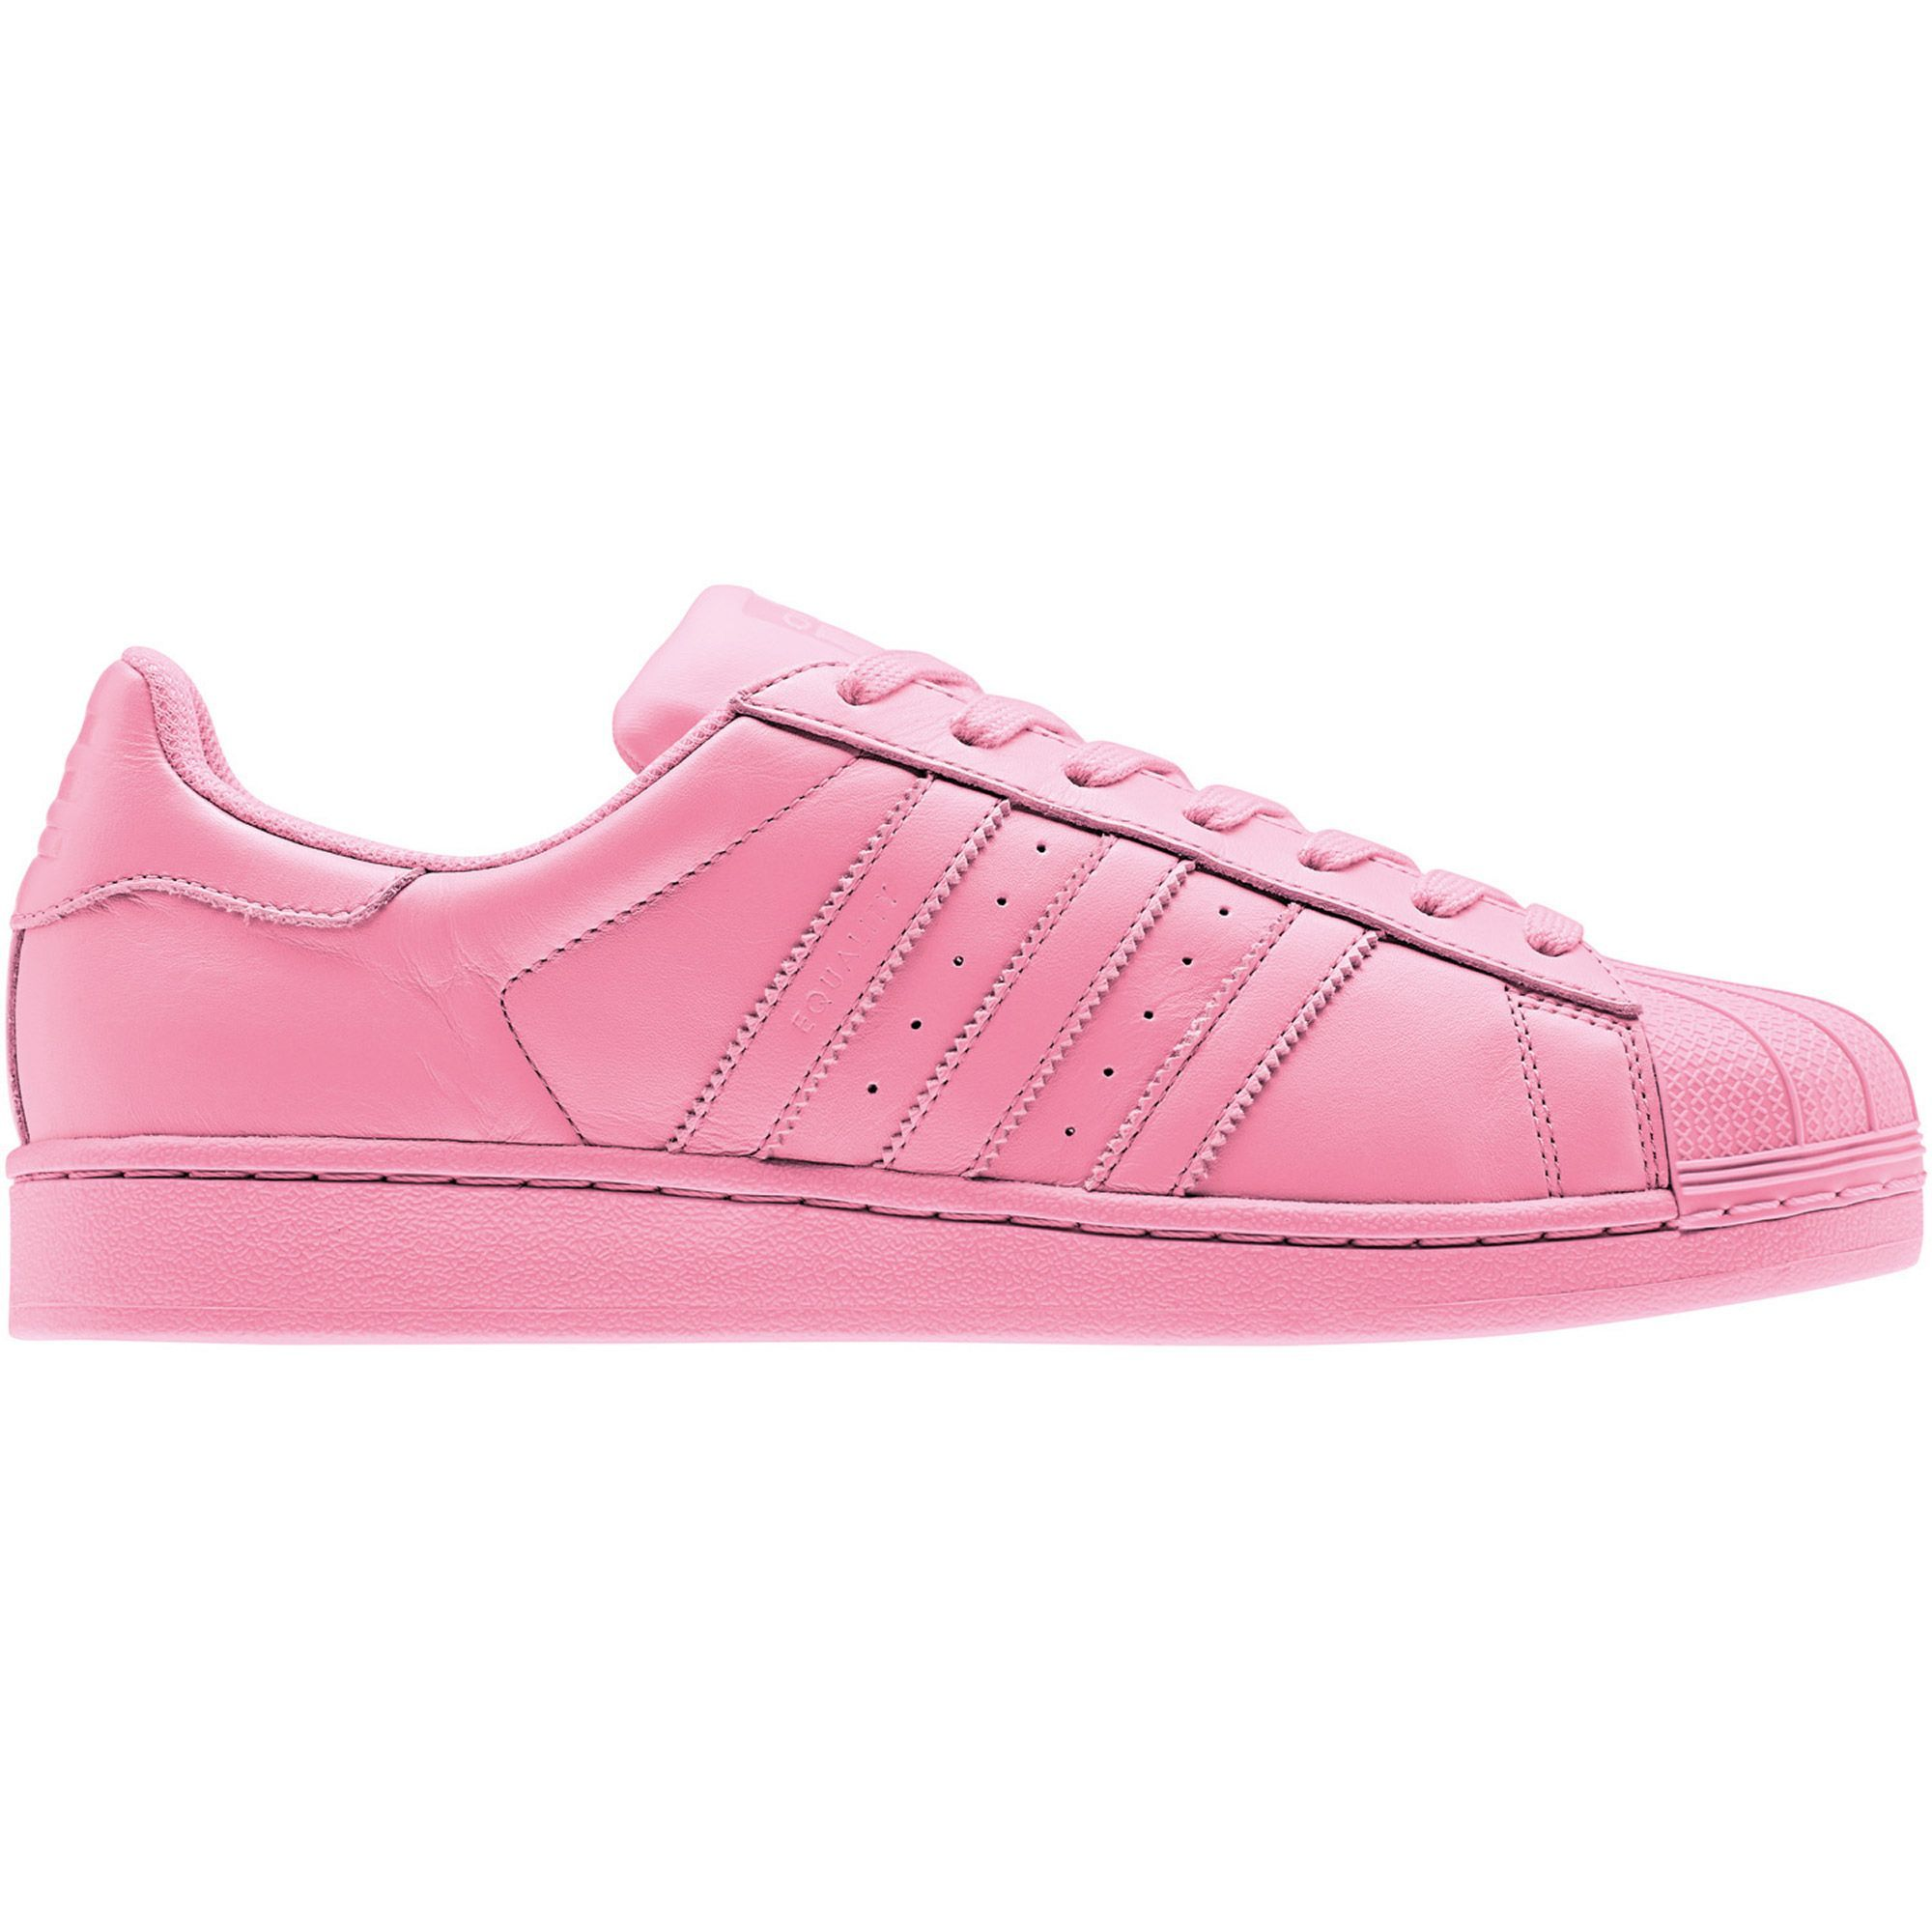 Adidas Superstar Supercolor Shoes